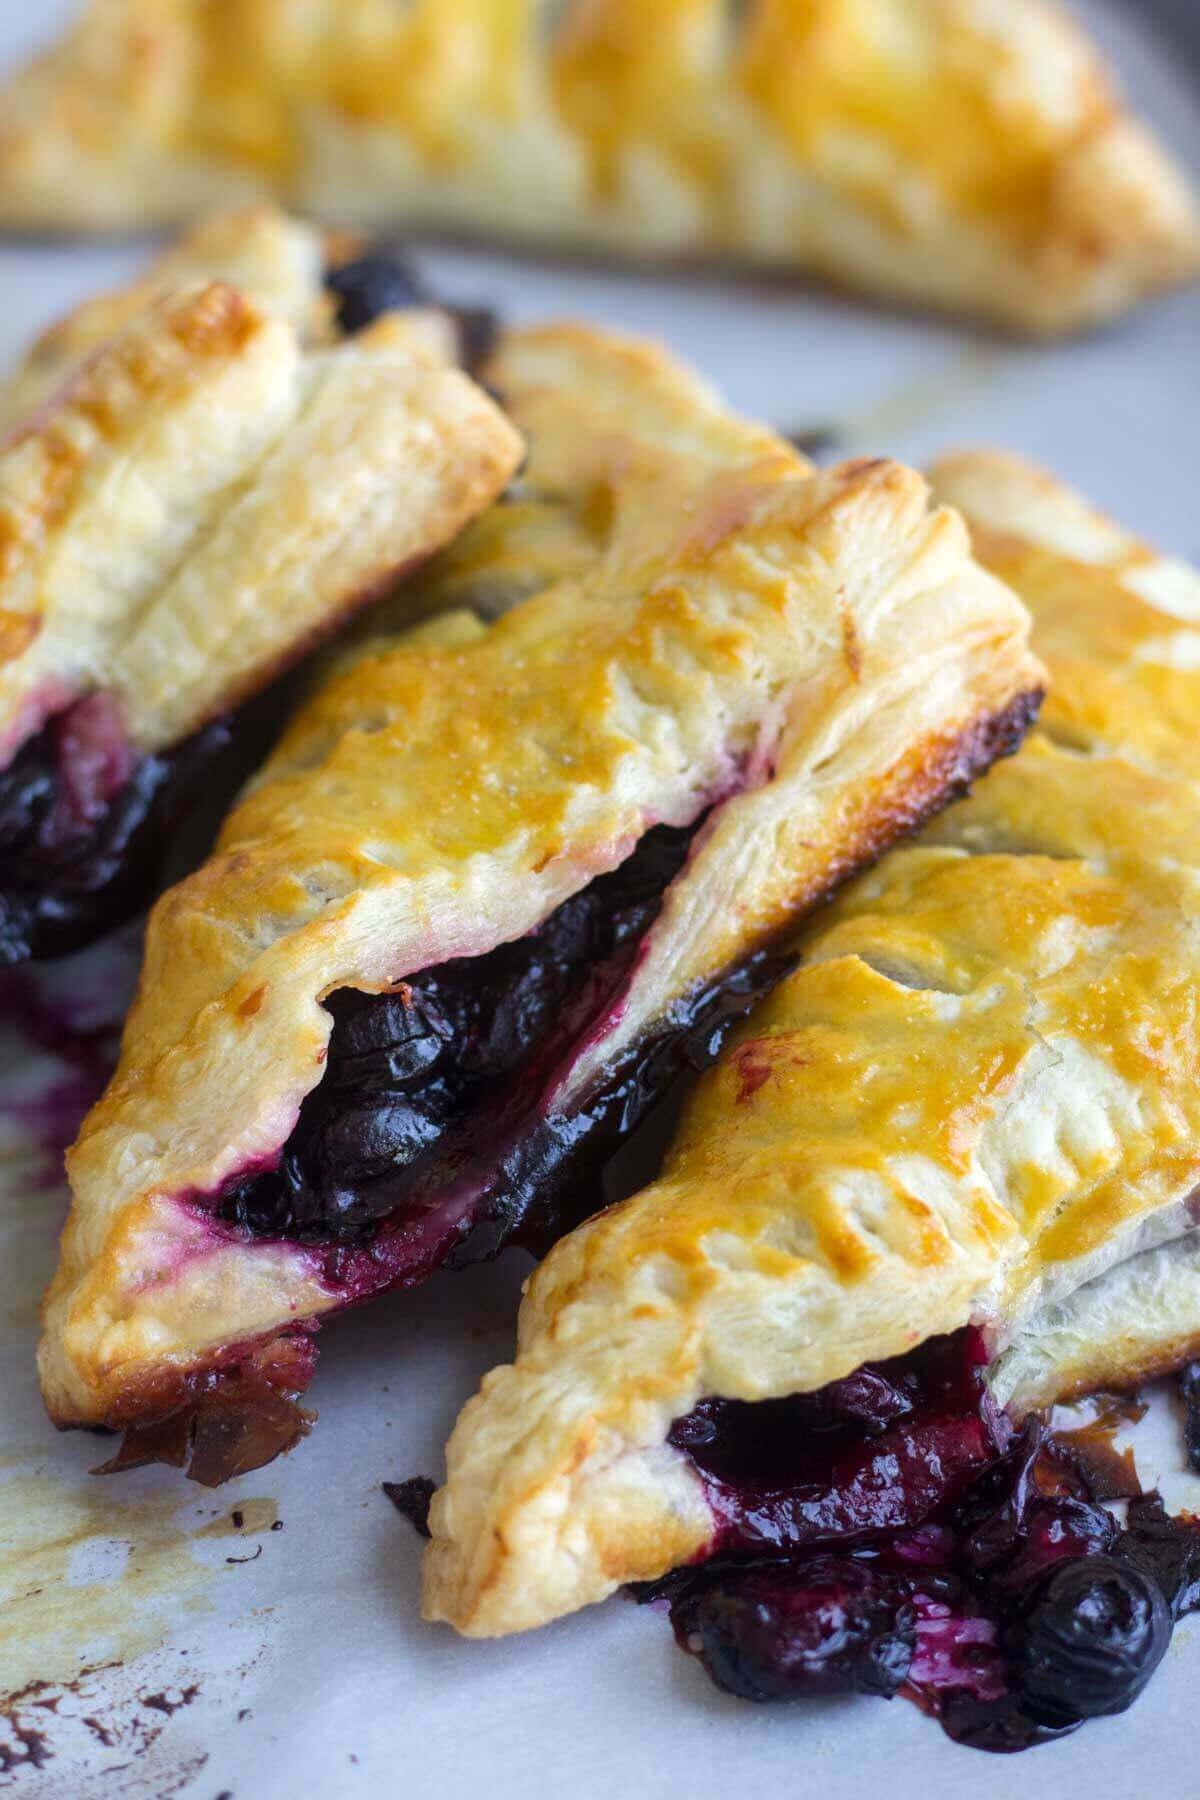 3 lemon blueberry turnovers baked golden brown on a baking pan with parchment paper